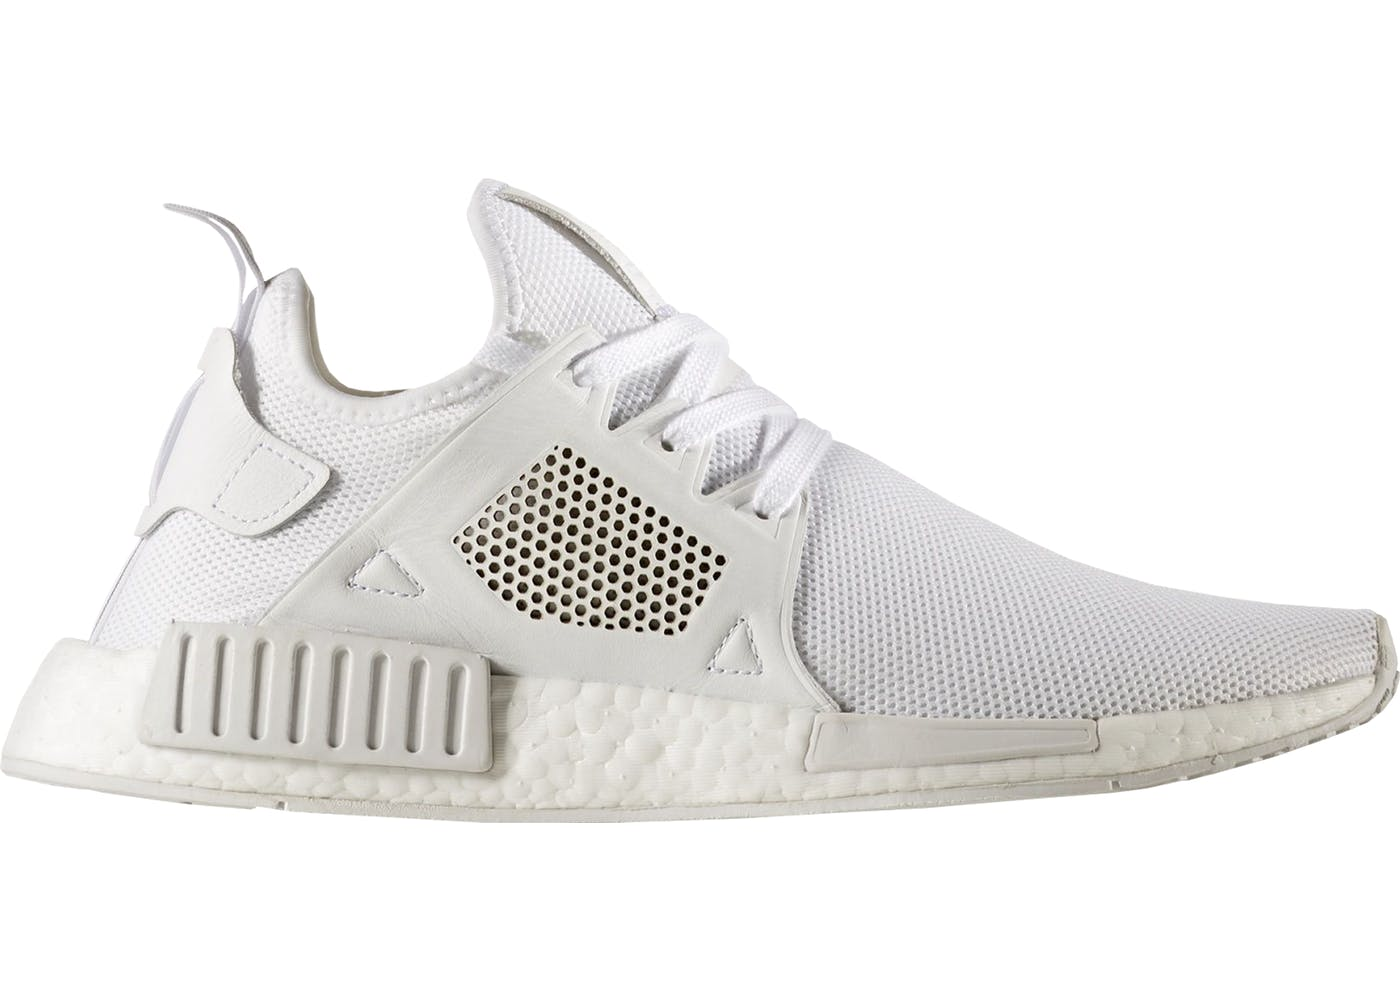 adidas nmd triple white